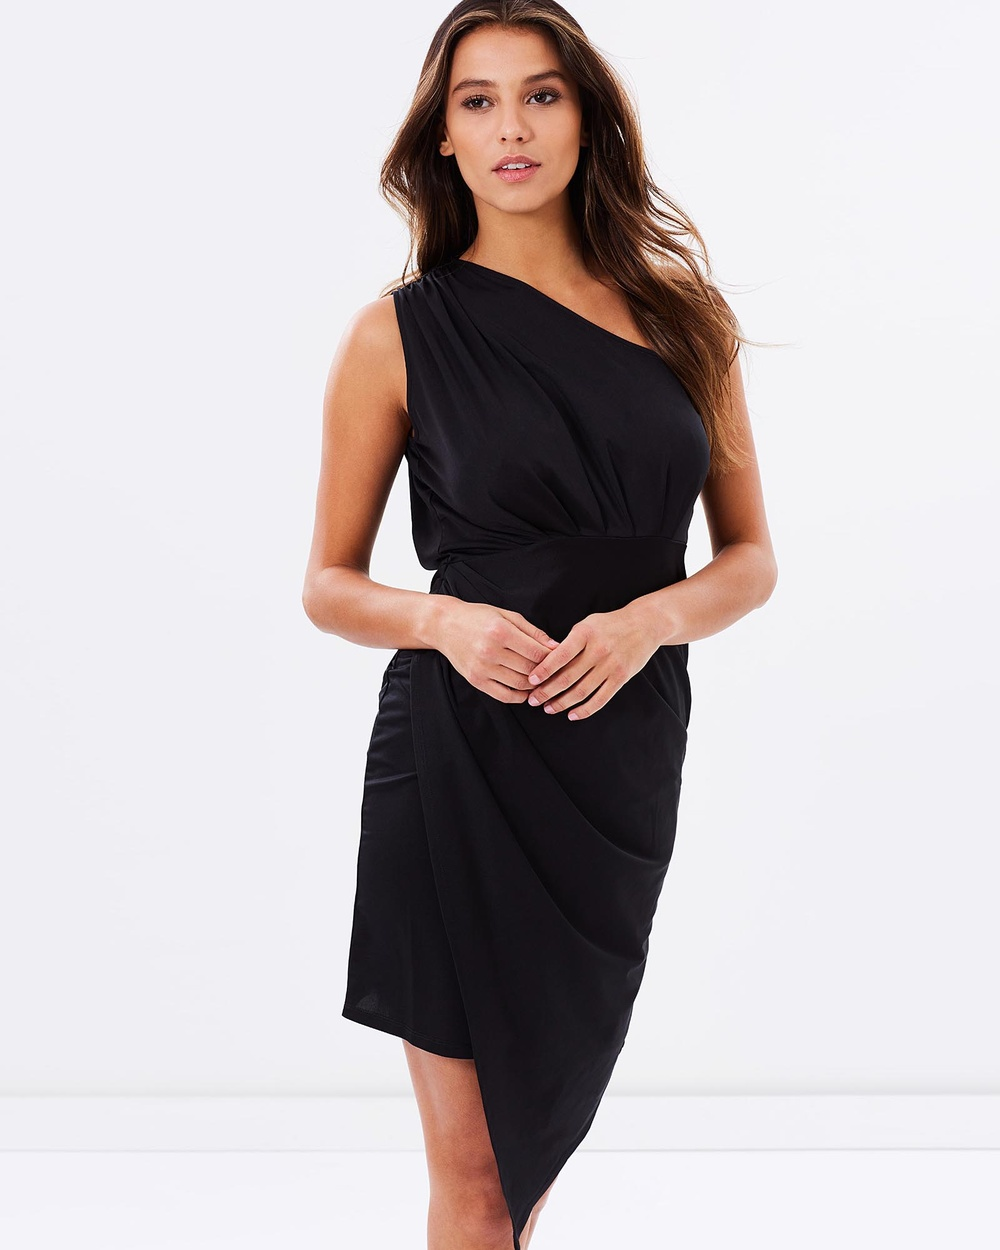 SKIVA One Shoulder Asymmetrical Dress Dresses Black One Shoulder Asymmetrical Dress